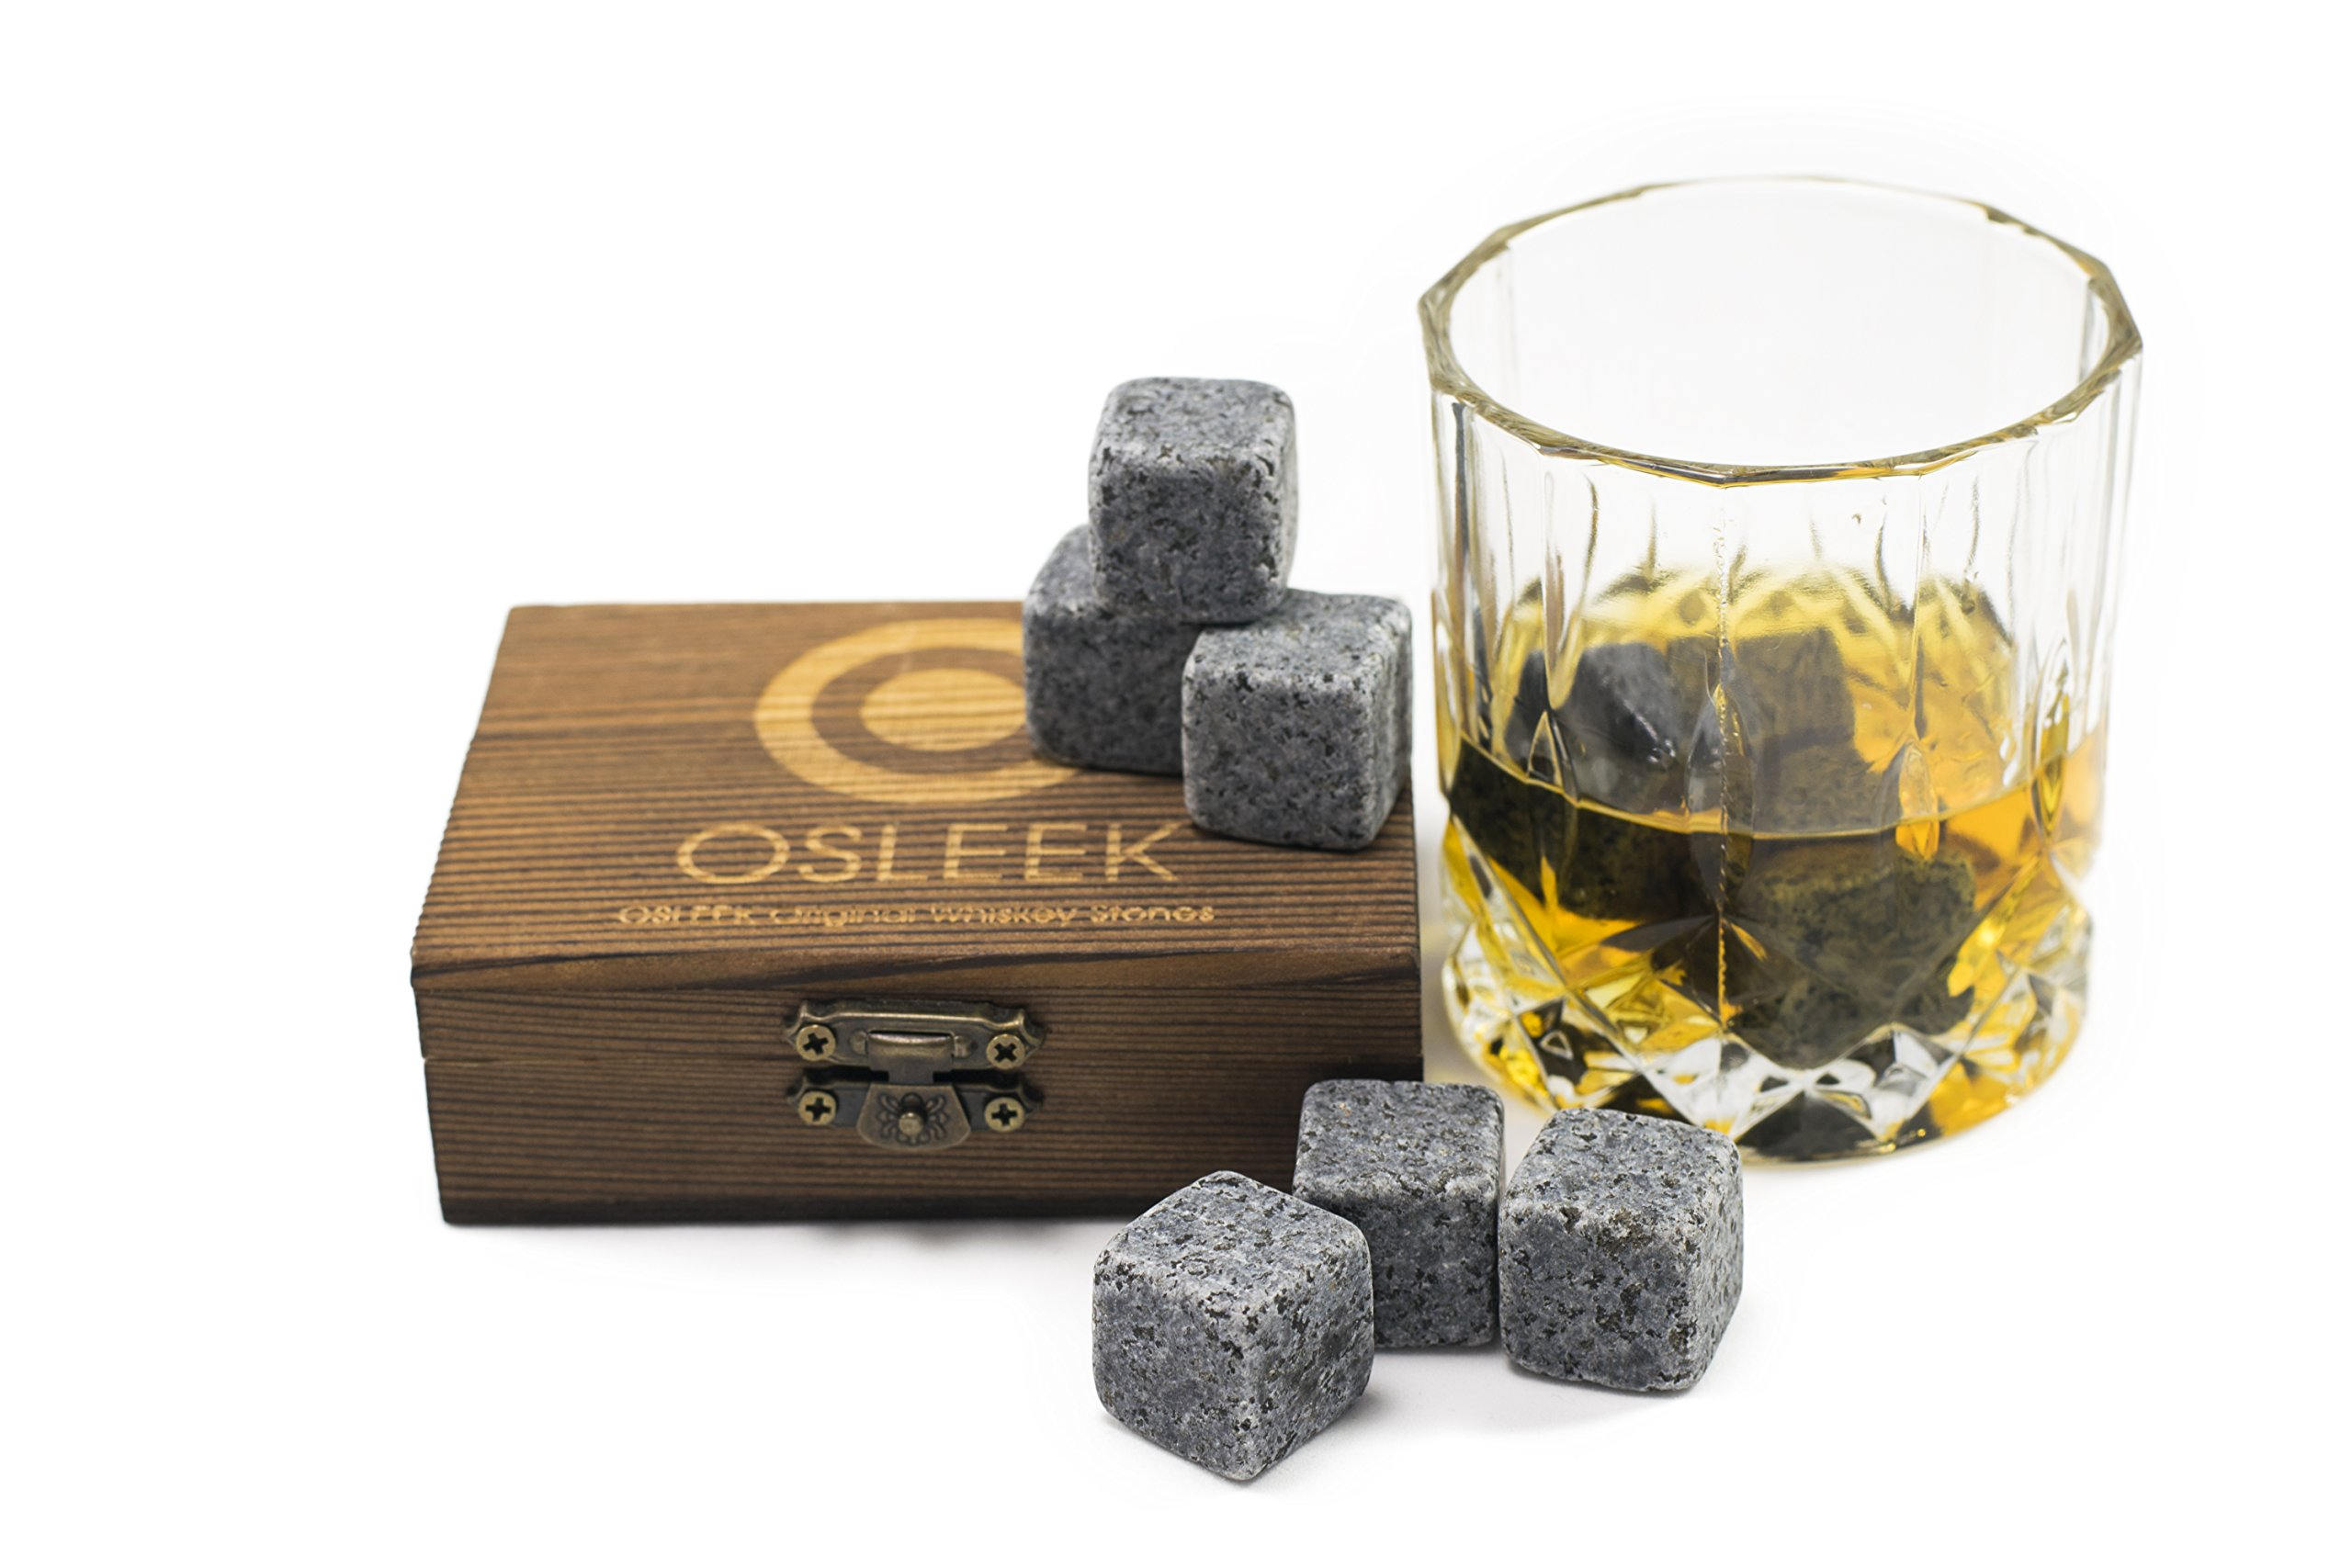 Whiskey Stones - Gift Set of 9 Pure Soapstone Chilling Rocks | Replaces Ice Cubes | No Water Dilution | Including Freezing Velvet Bag, Packed In Decorative Handmade Wood Box